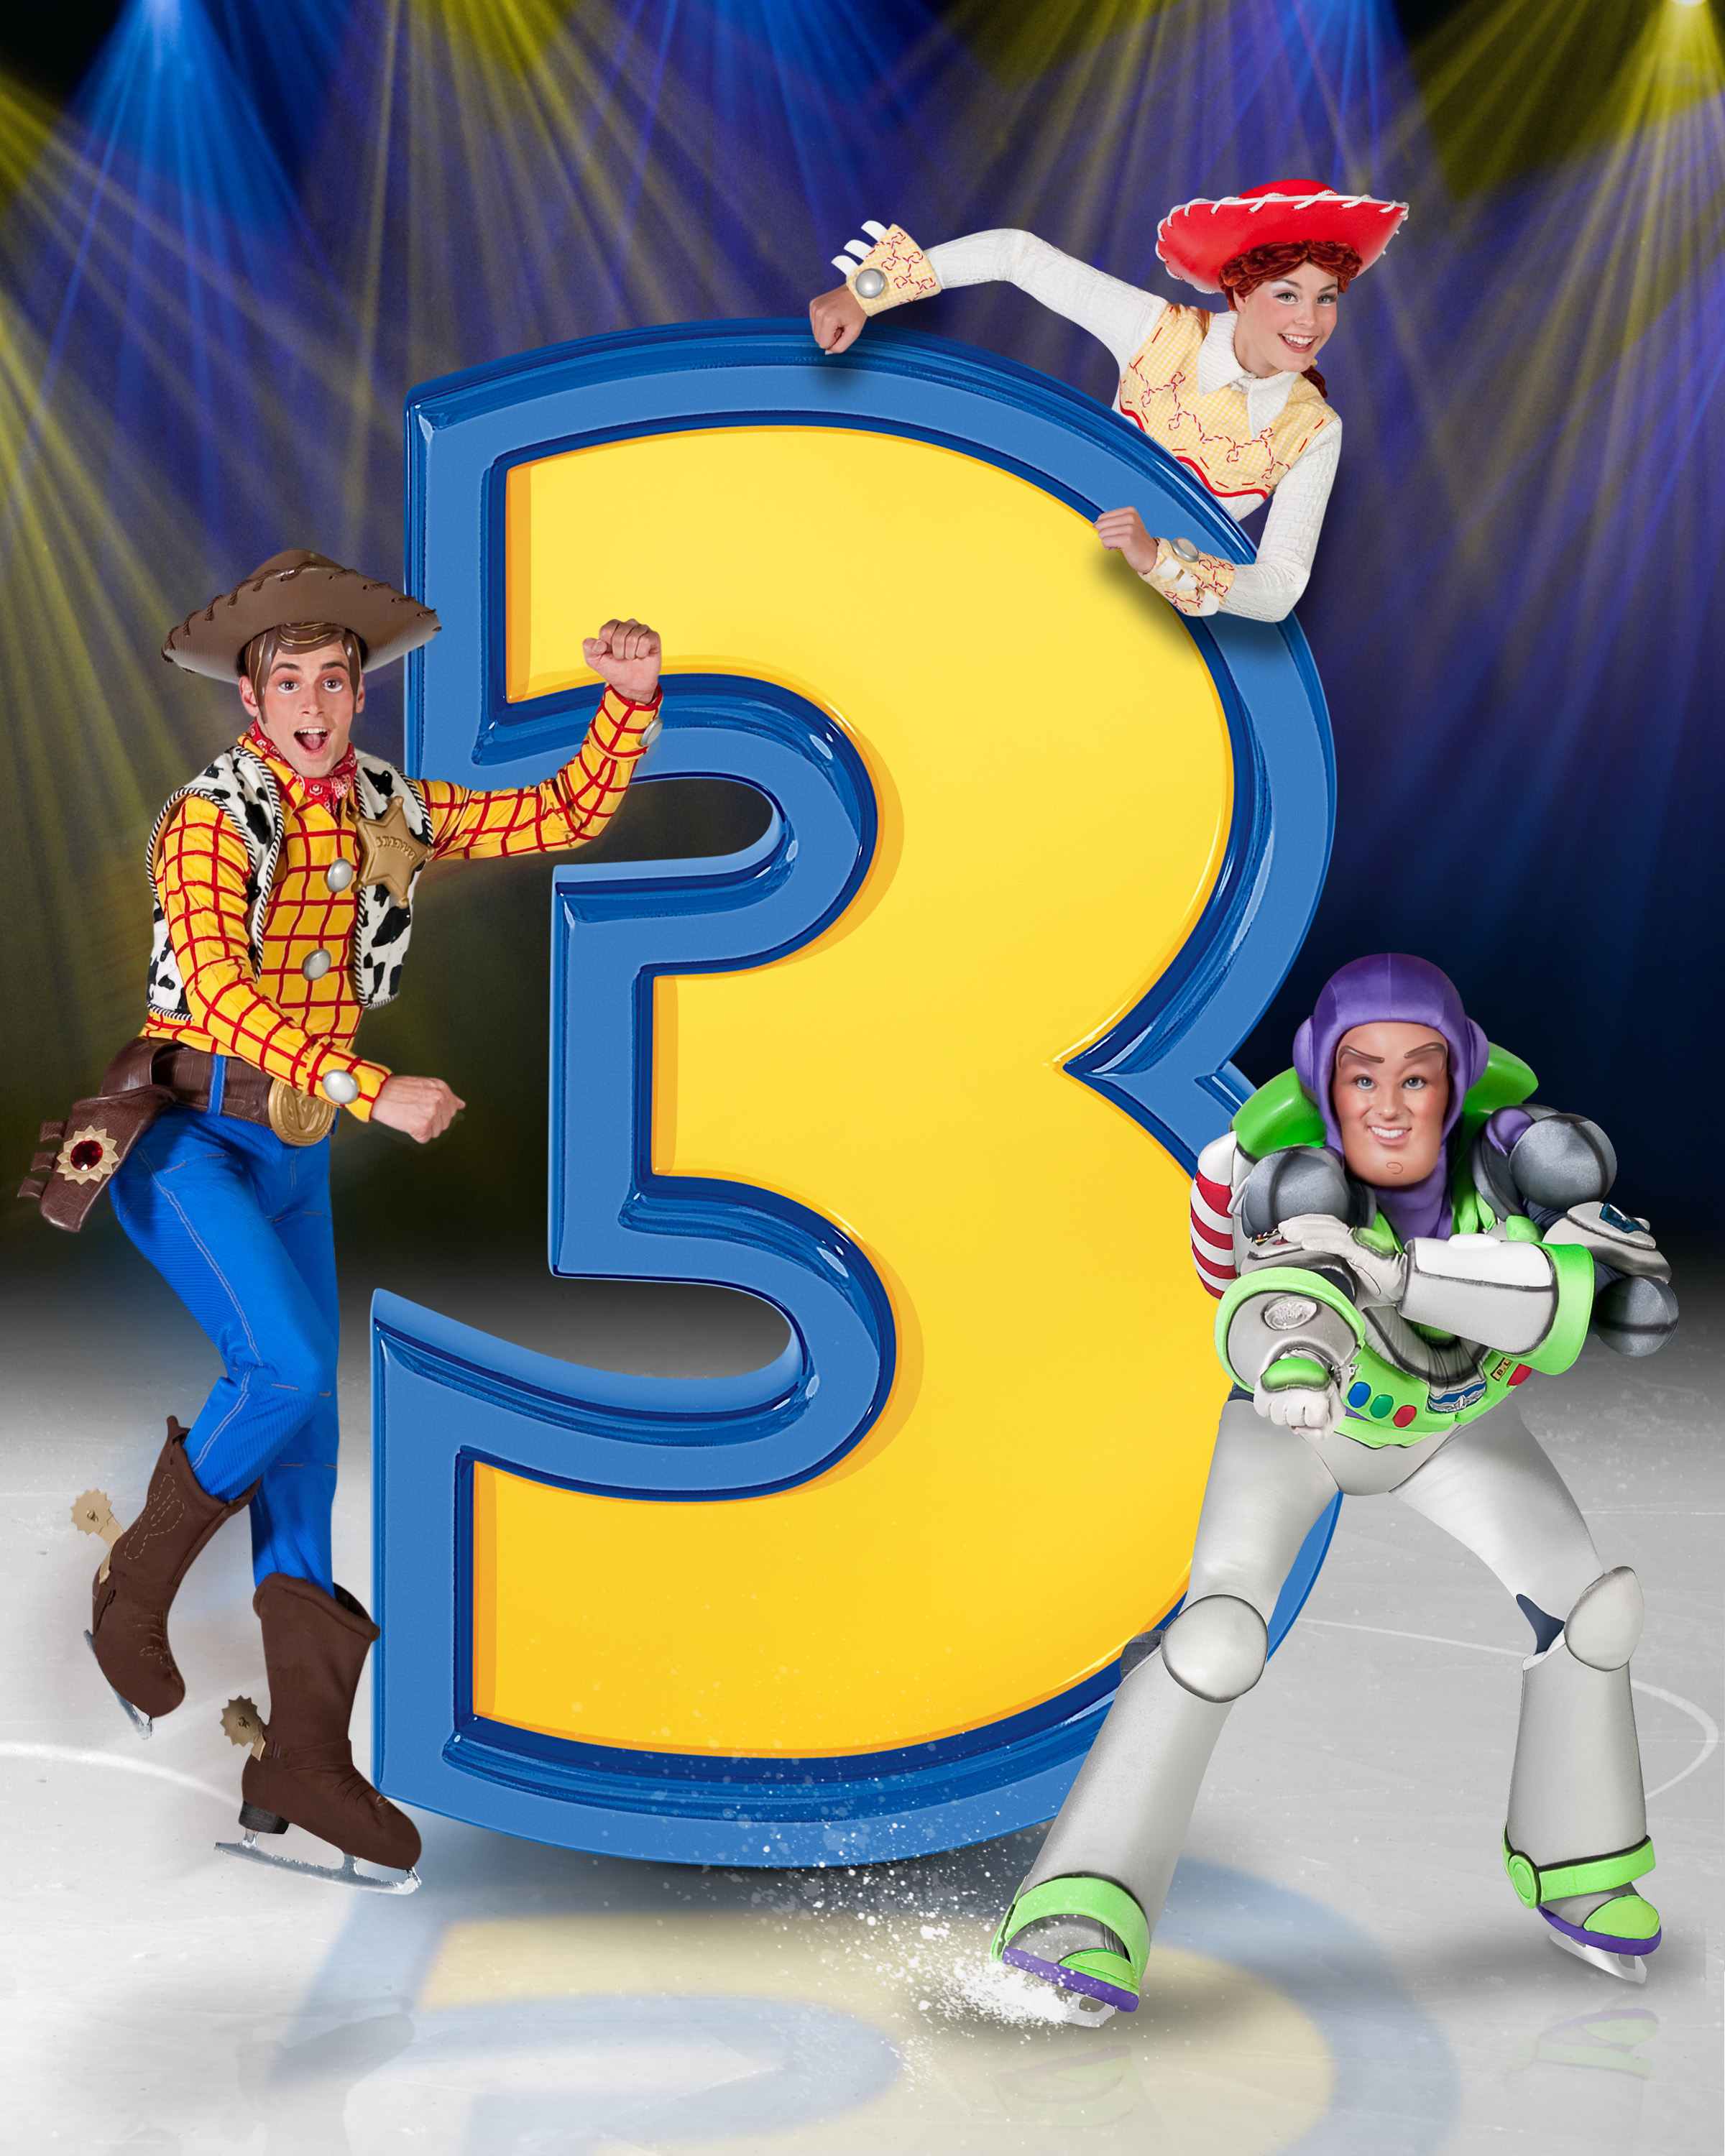 Toy Story Cracked Magazine: Disney On Ice Presents Disney•Pixar's Toy Story 3 Takes #1